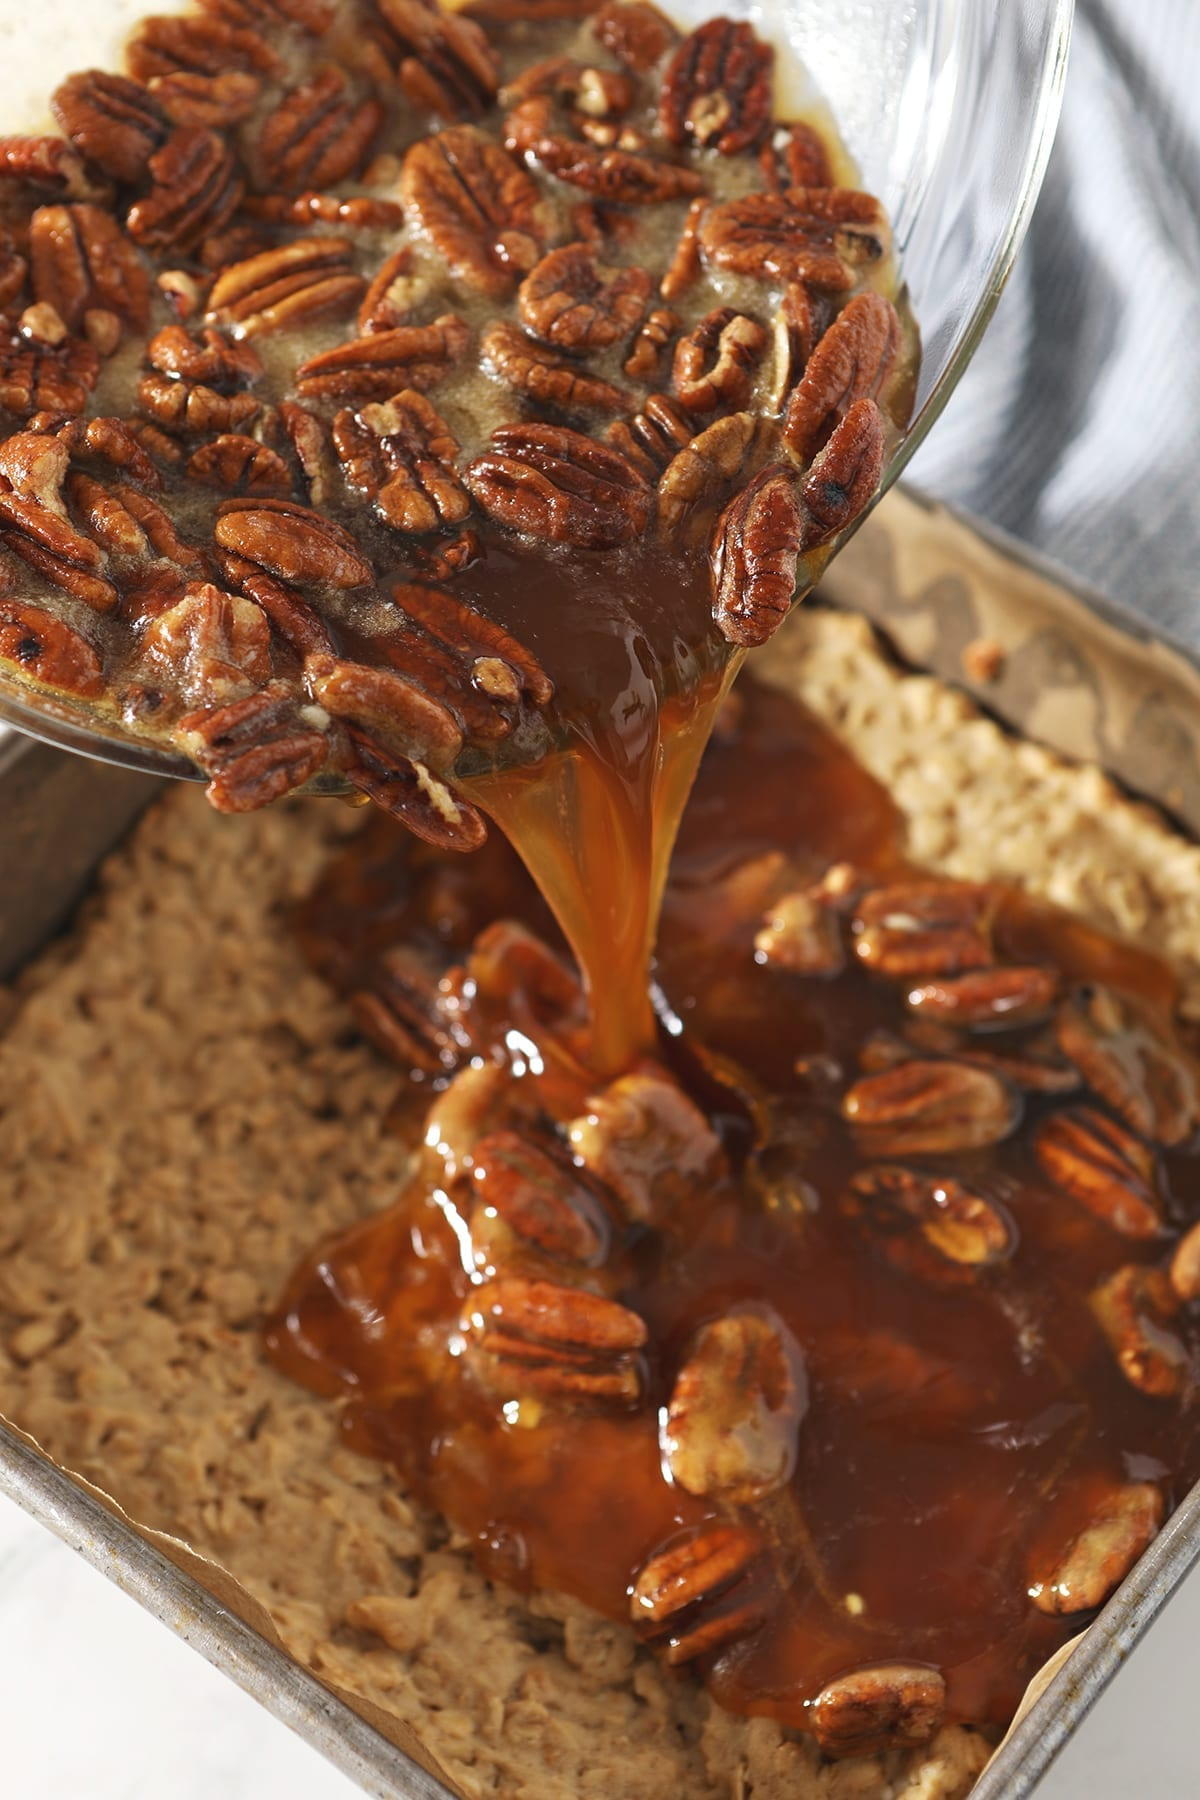 Pecan halves and the filling pours on top of the pre-baked pie bar crust